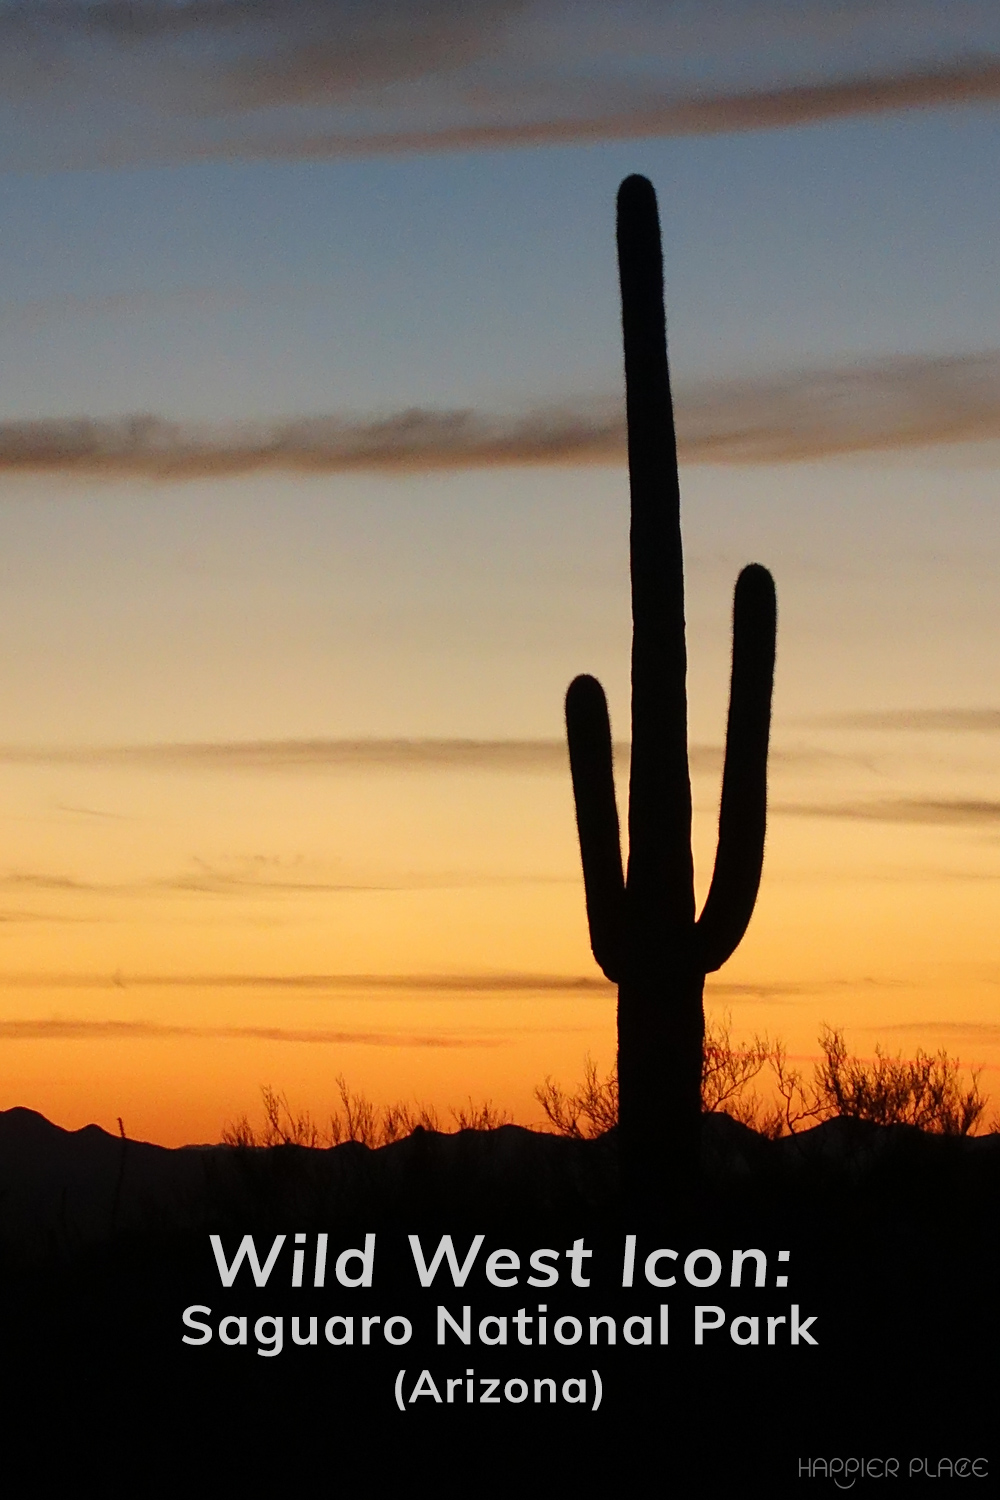 Wild West Icon: Saguaro National Park (Arizona)